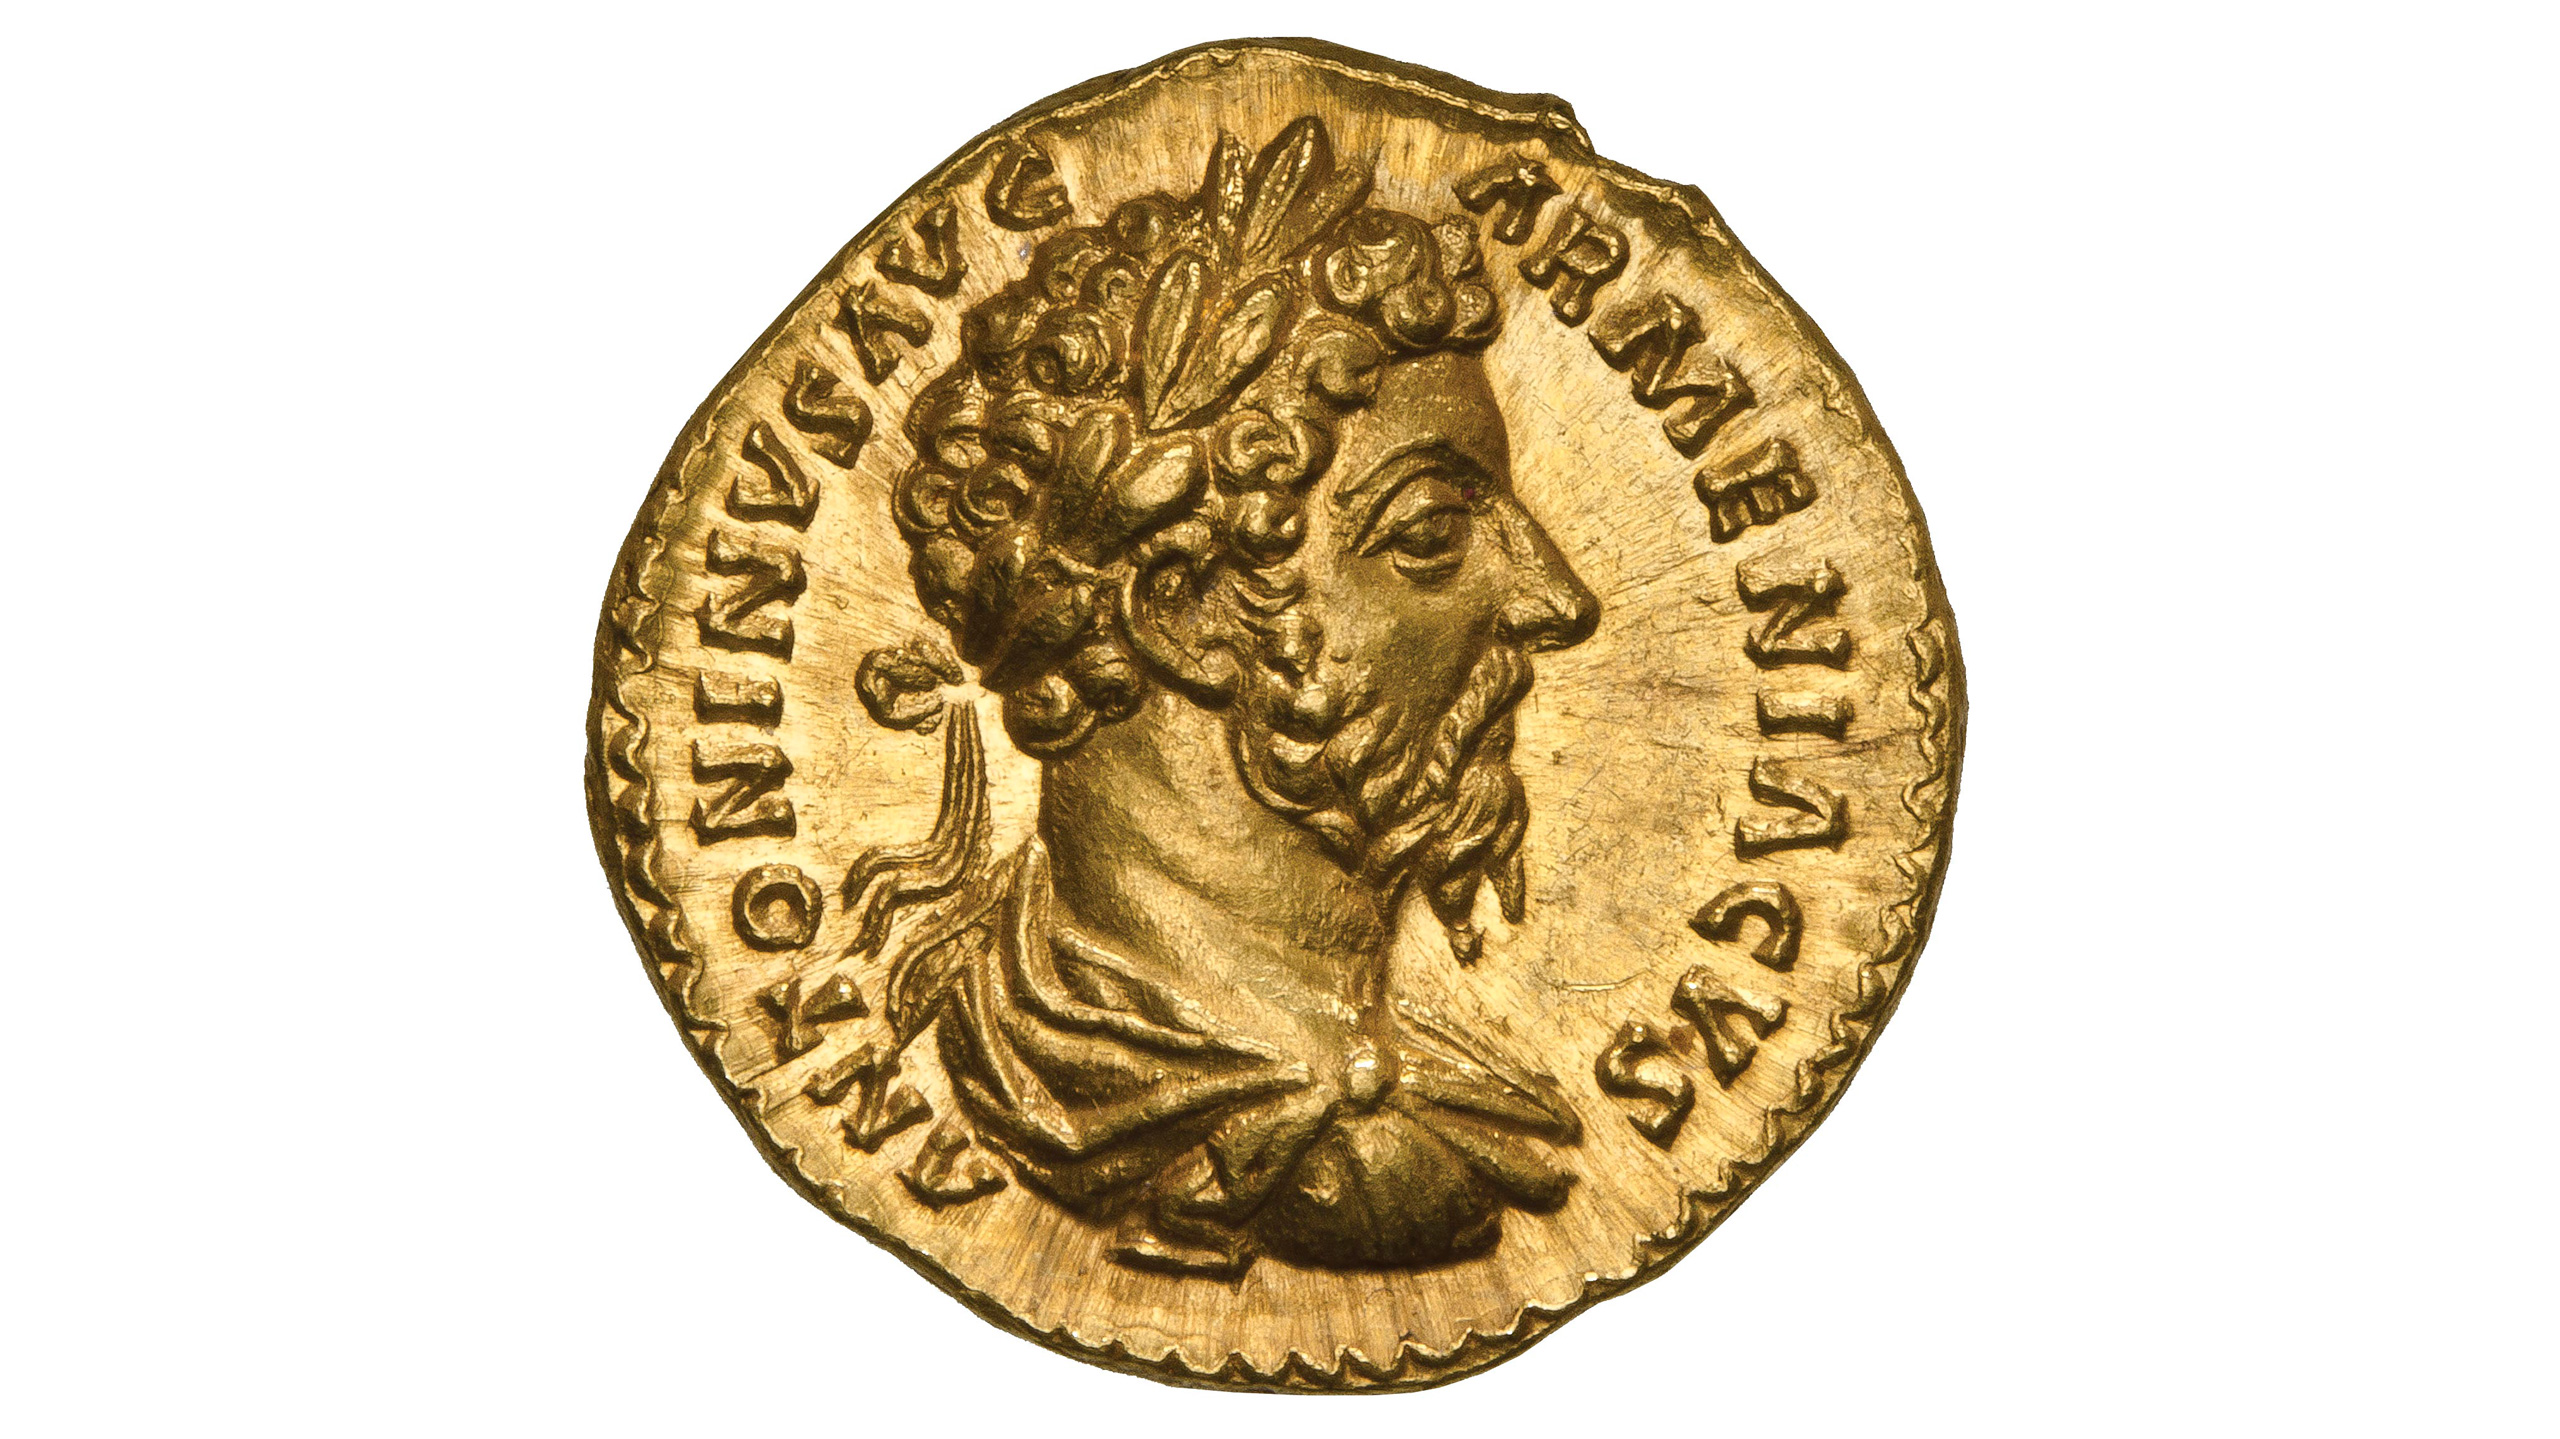 Photography of roman Coin in gold from the emperor Marcus Aurelius, photographed for Morton and Eden in association with Sotheby's sold in auction in London Photography and retouch by Maria Queralt